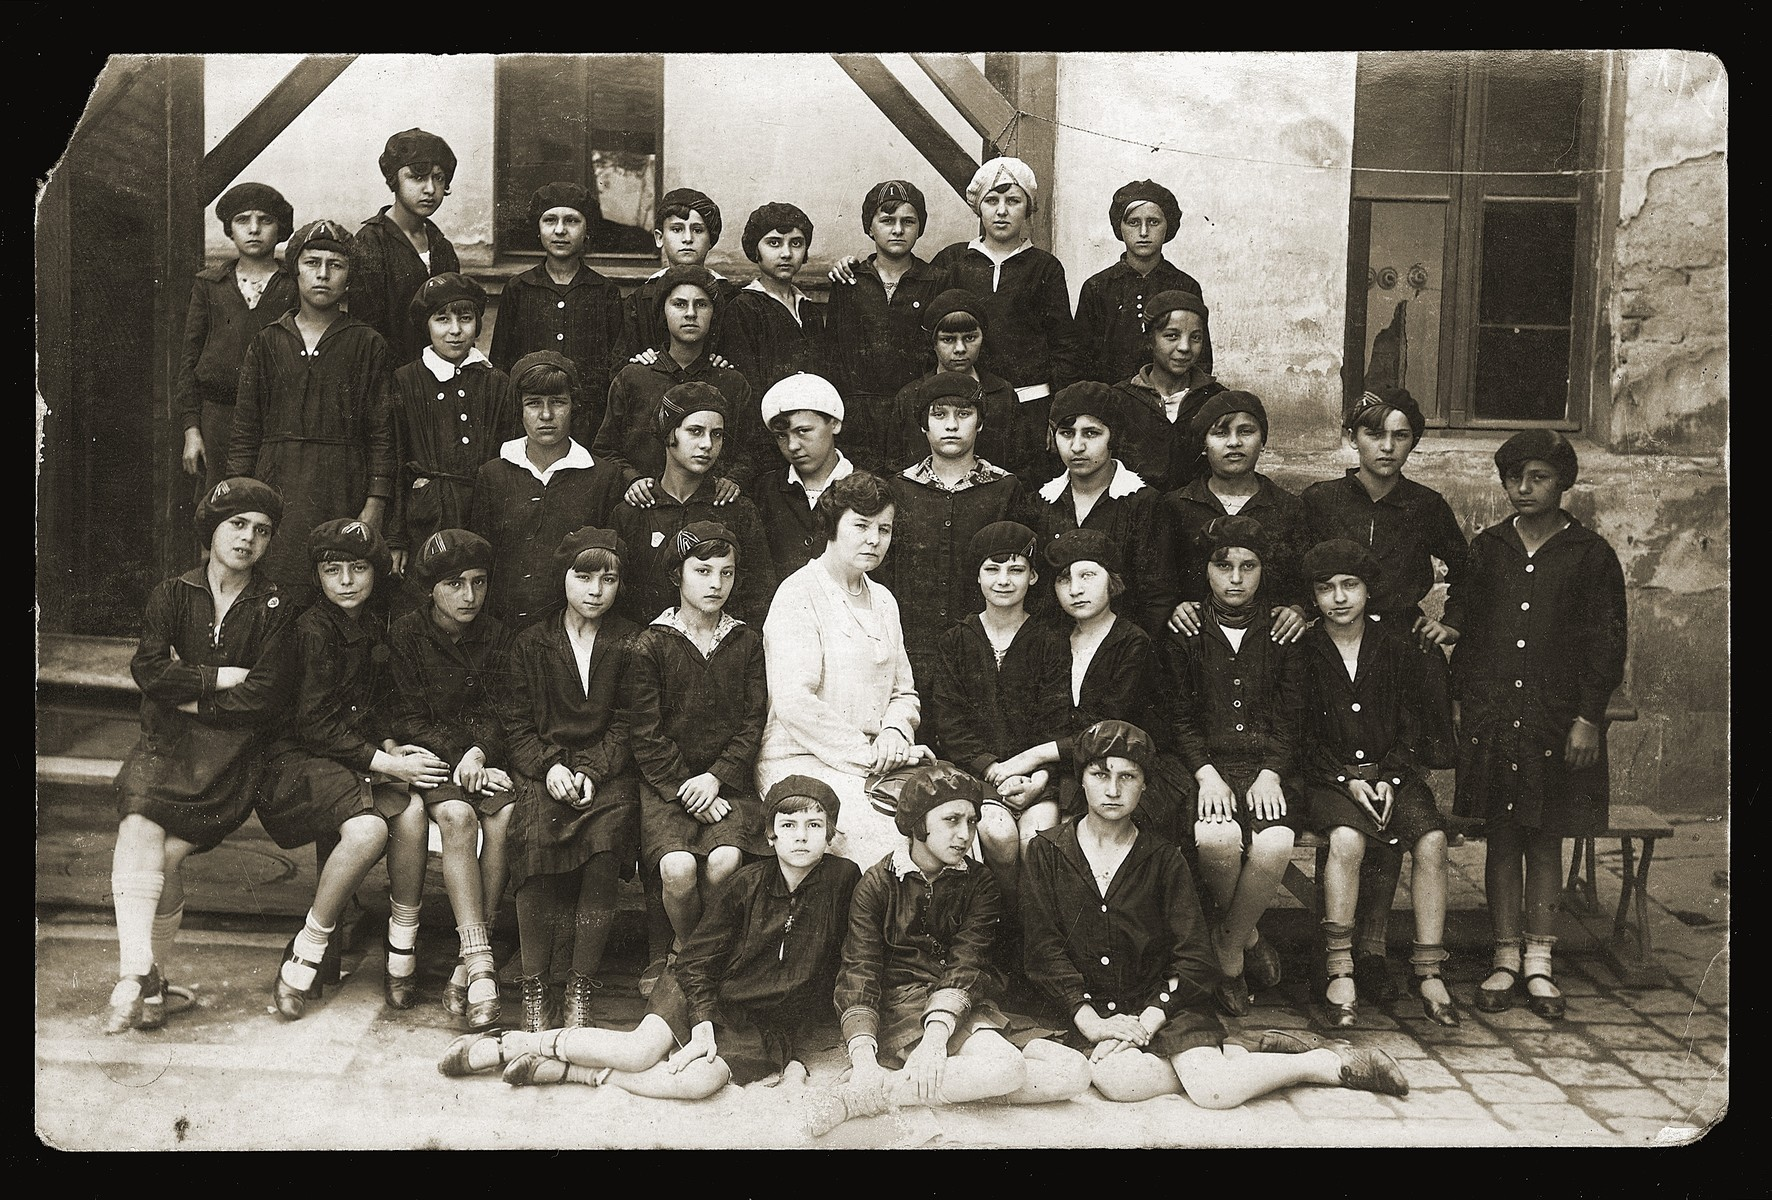 Group portrait of Gabriela Konfino's fifth grade class in a Jewish school in Belgrade.  Gabriela Konfino is pictured in the second row, third from the right.